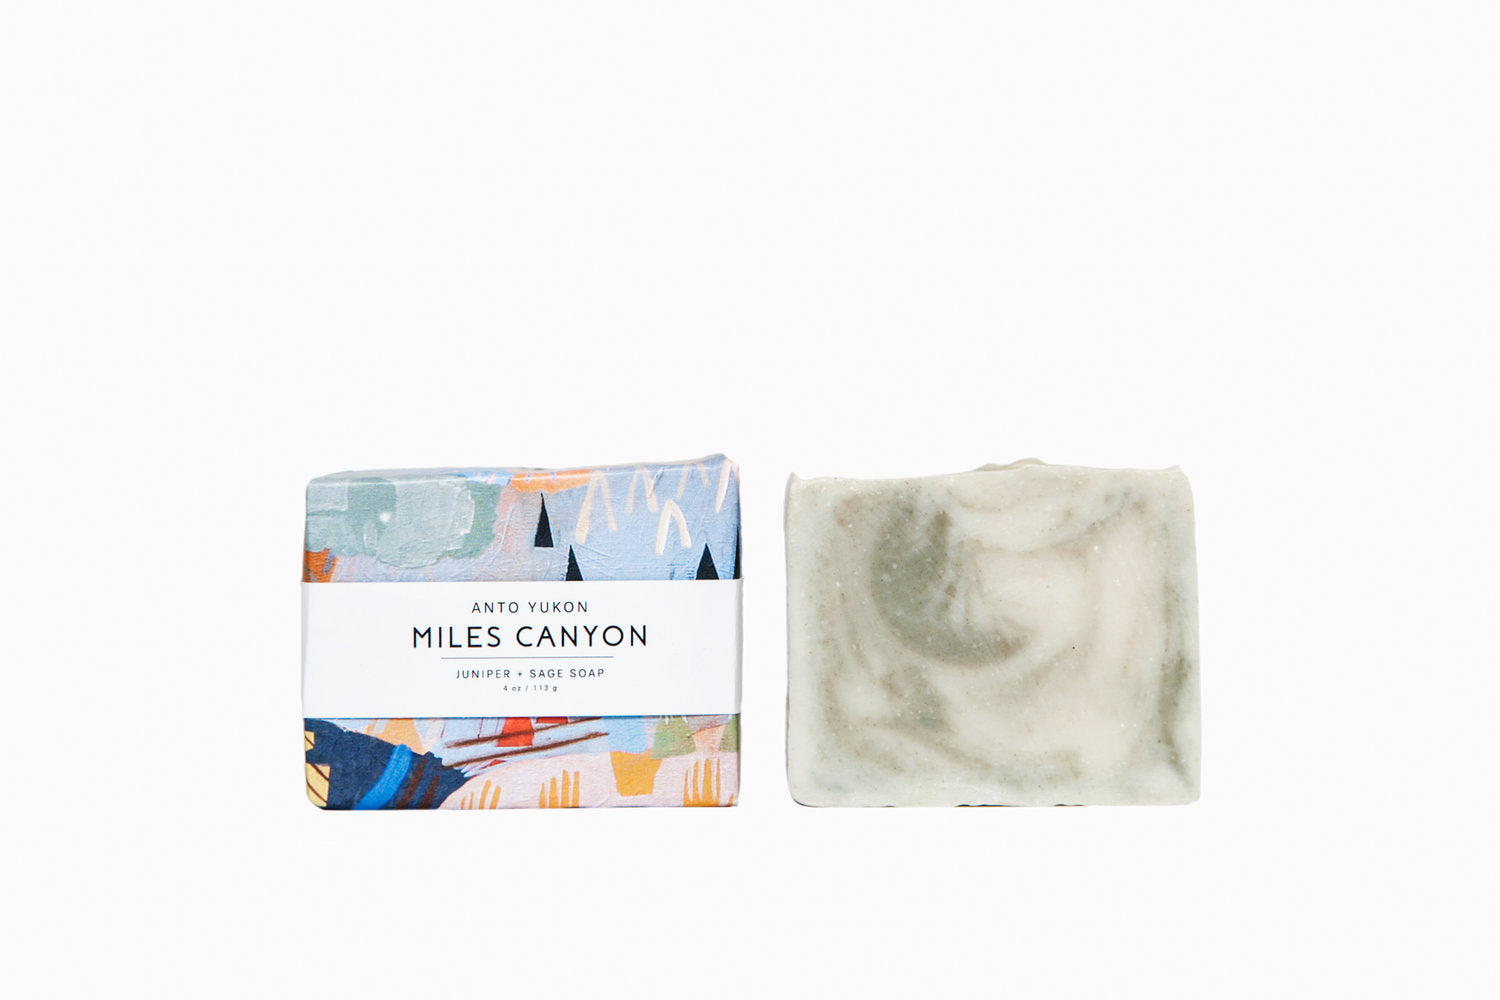 Bar Soap by Anto Yukon